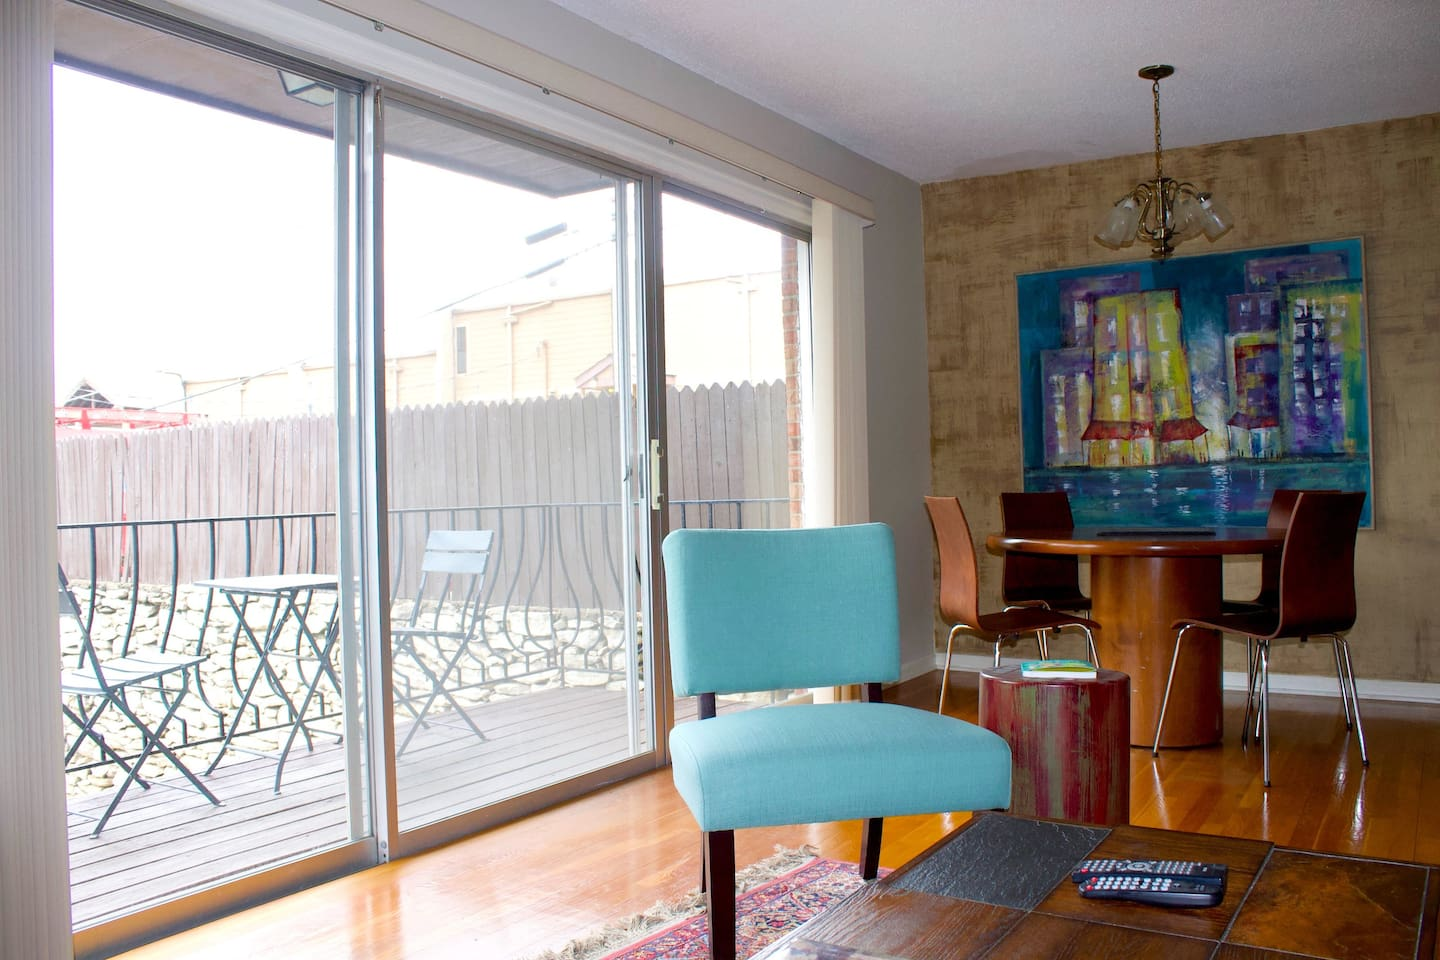 Living room opens to floor to ceiling windows and outdoor balcony overlooking courtyard.